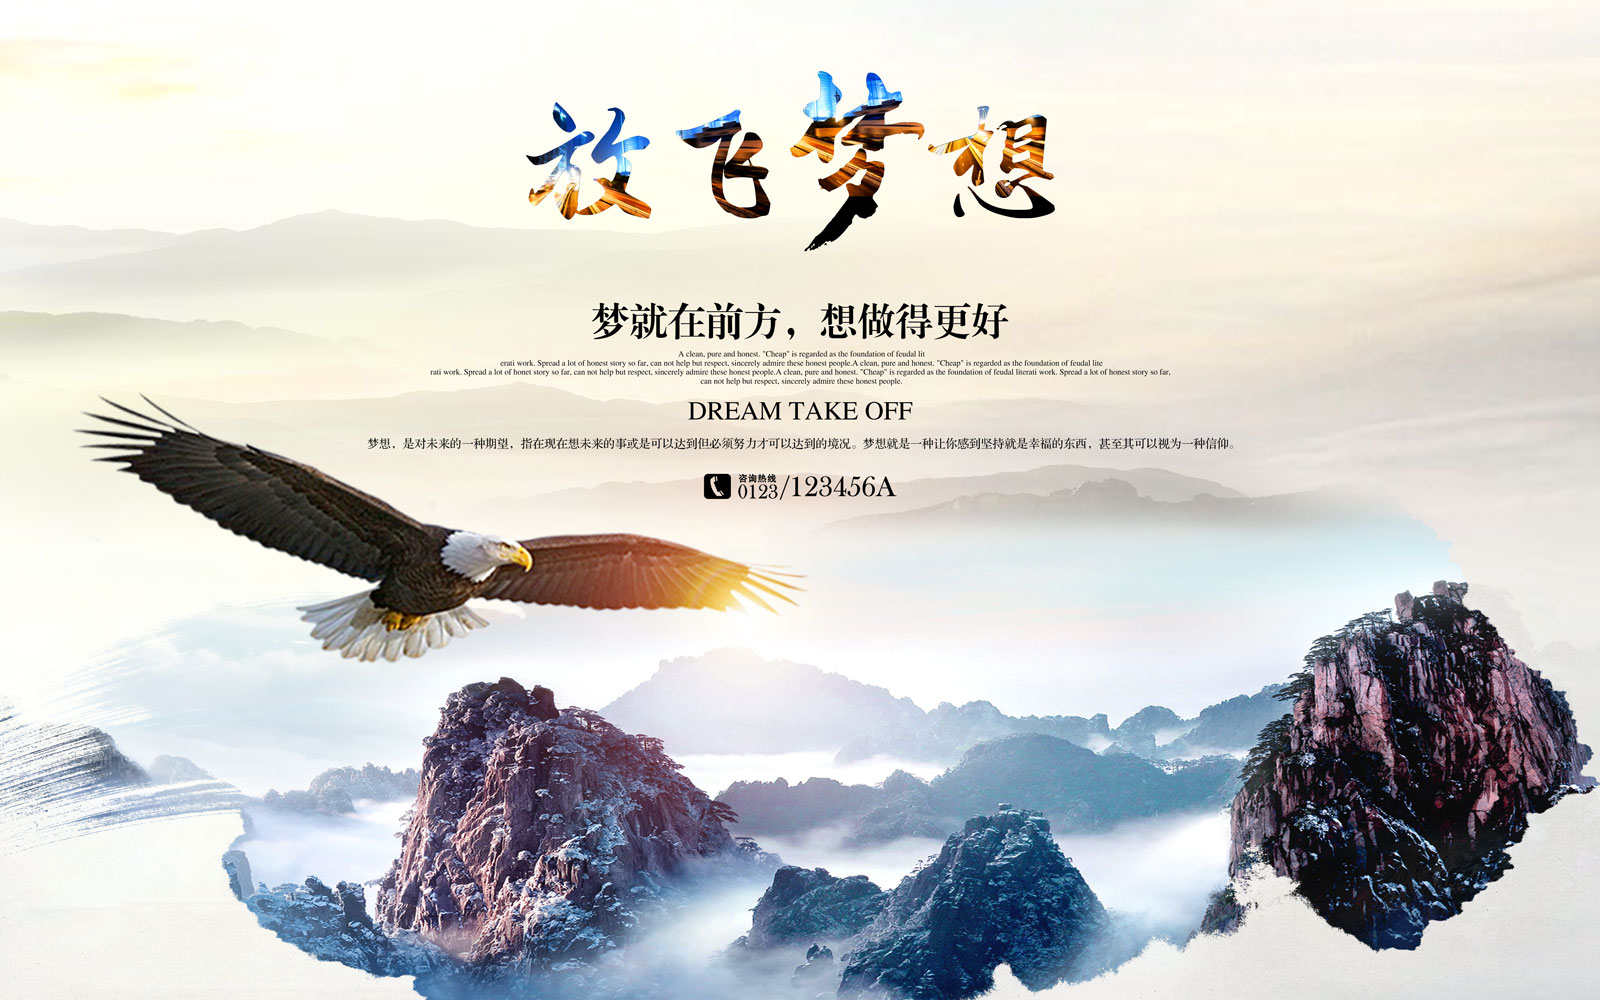 Flying dream business culture poster PSD material - China PSD File Free Download